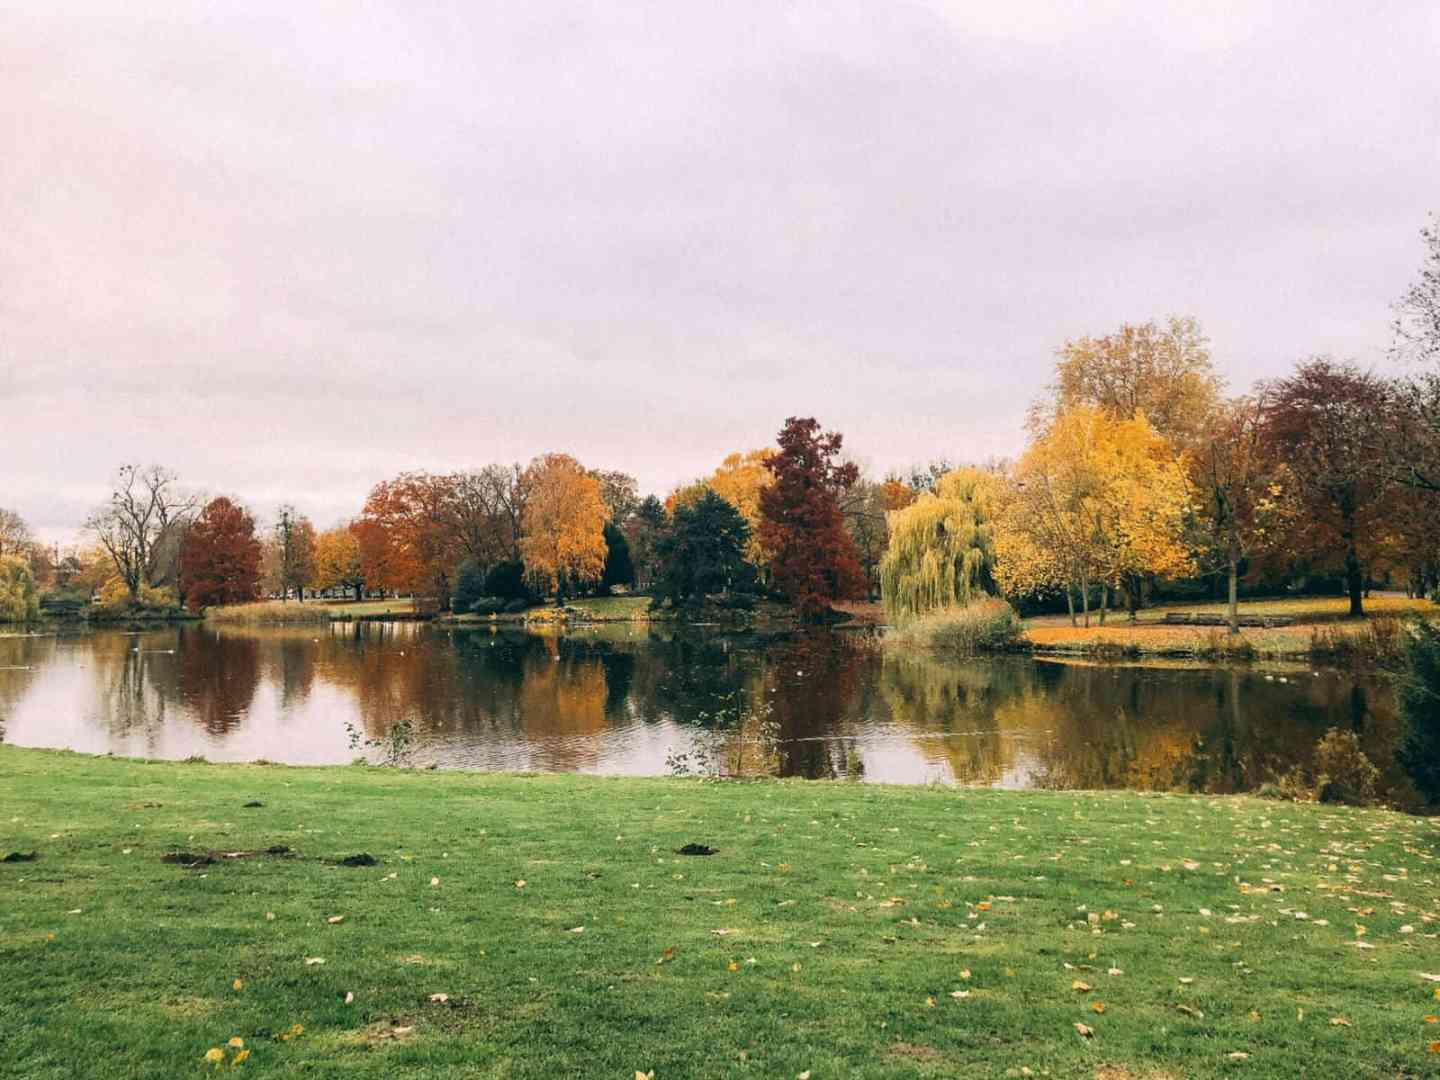 A park with a lake in the middle and autumn coloured trees on the other side of the lake